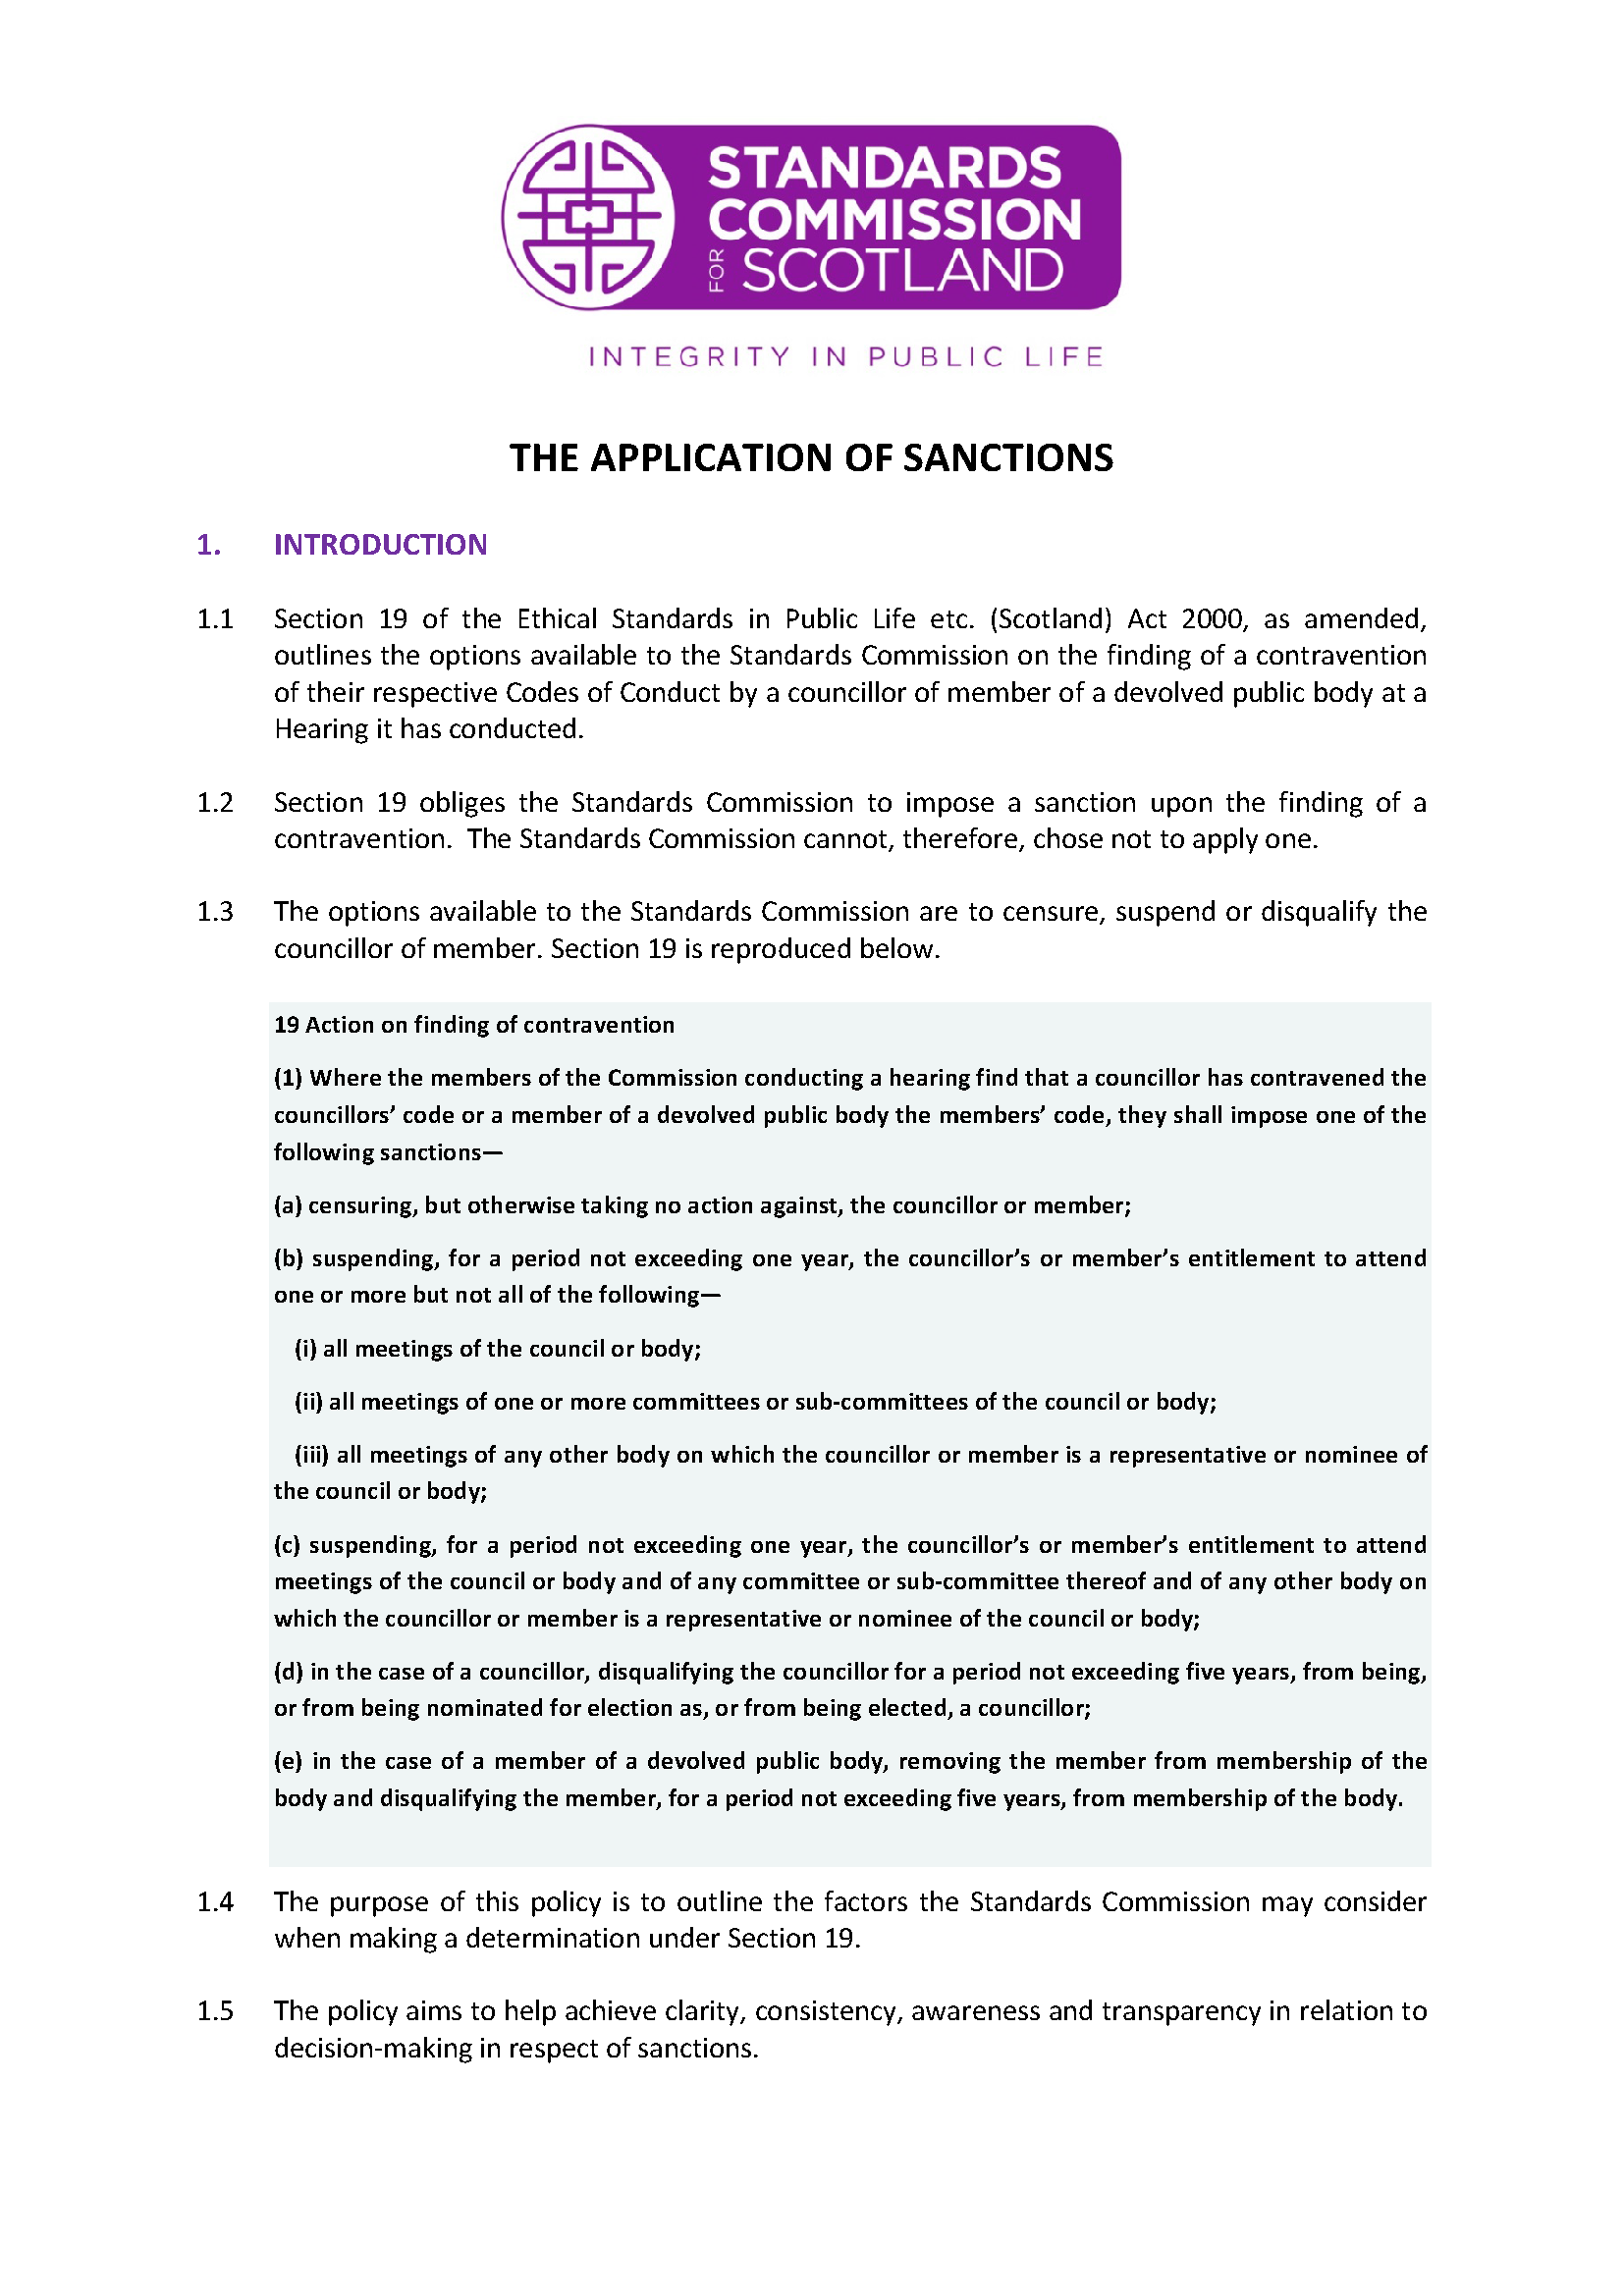 Policy on the Application of Sanctions